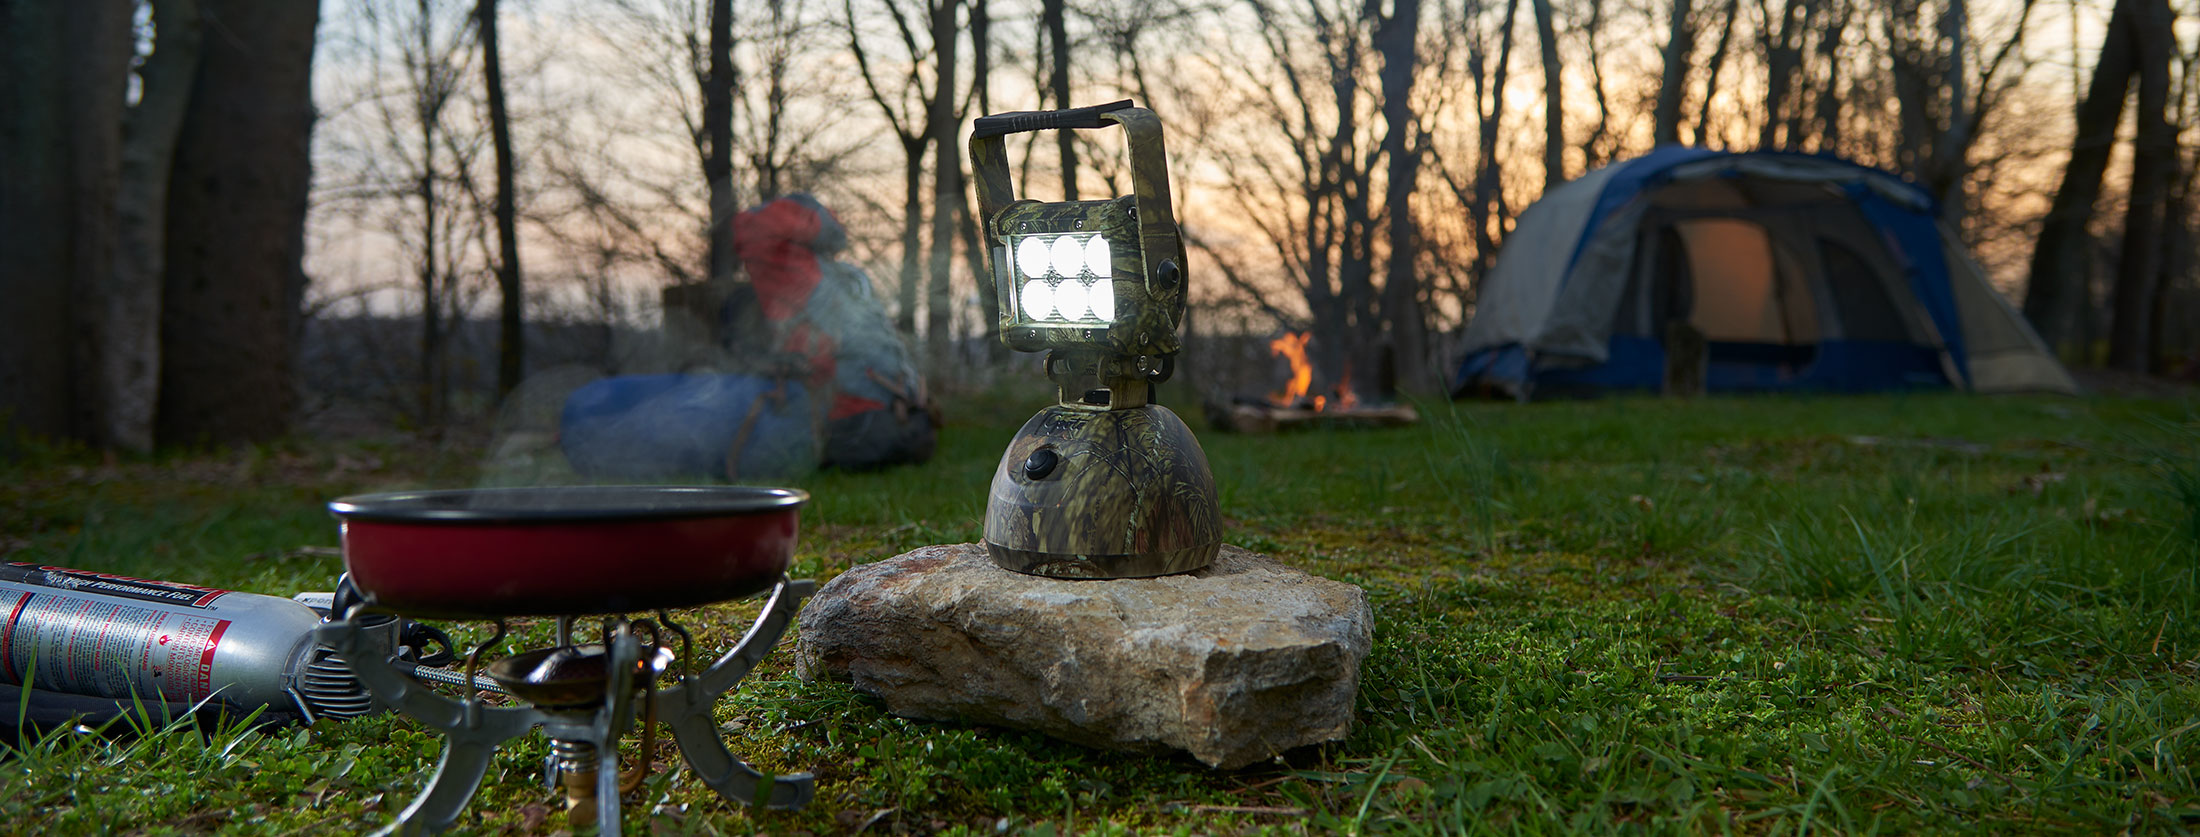 Camo LED Light being used at campsite by the campfire